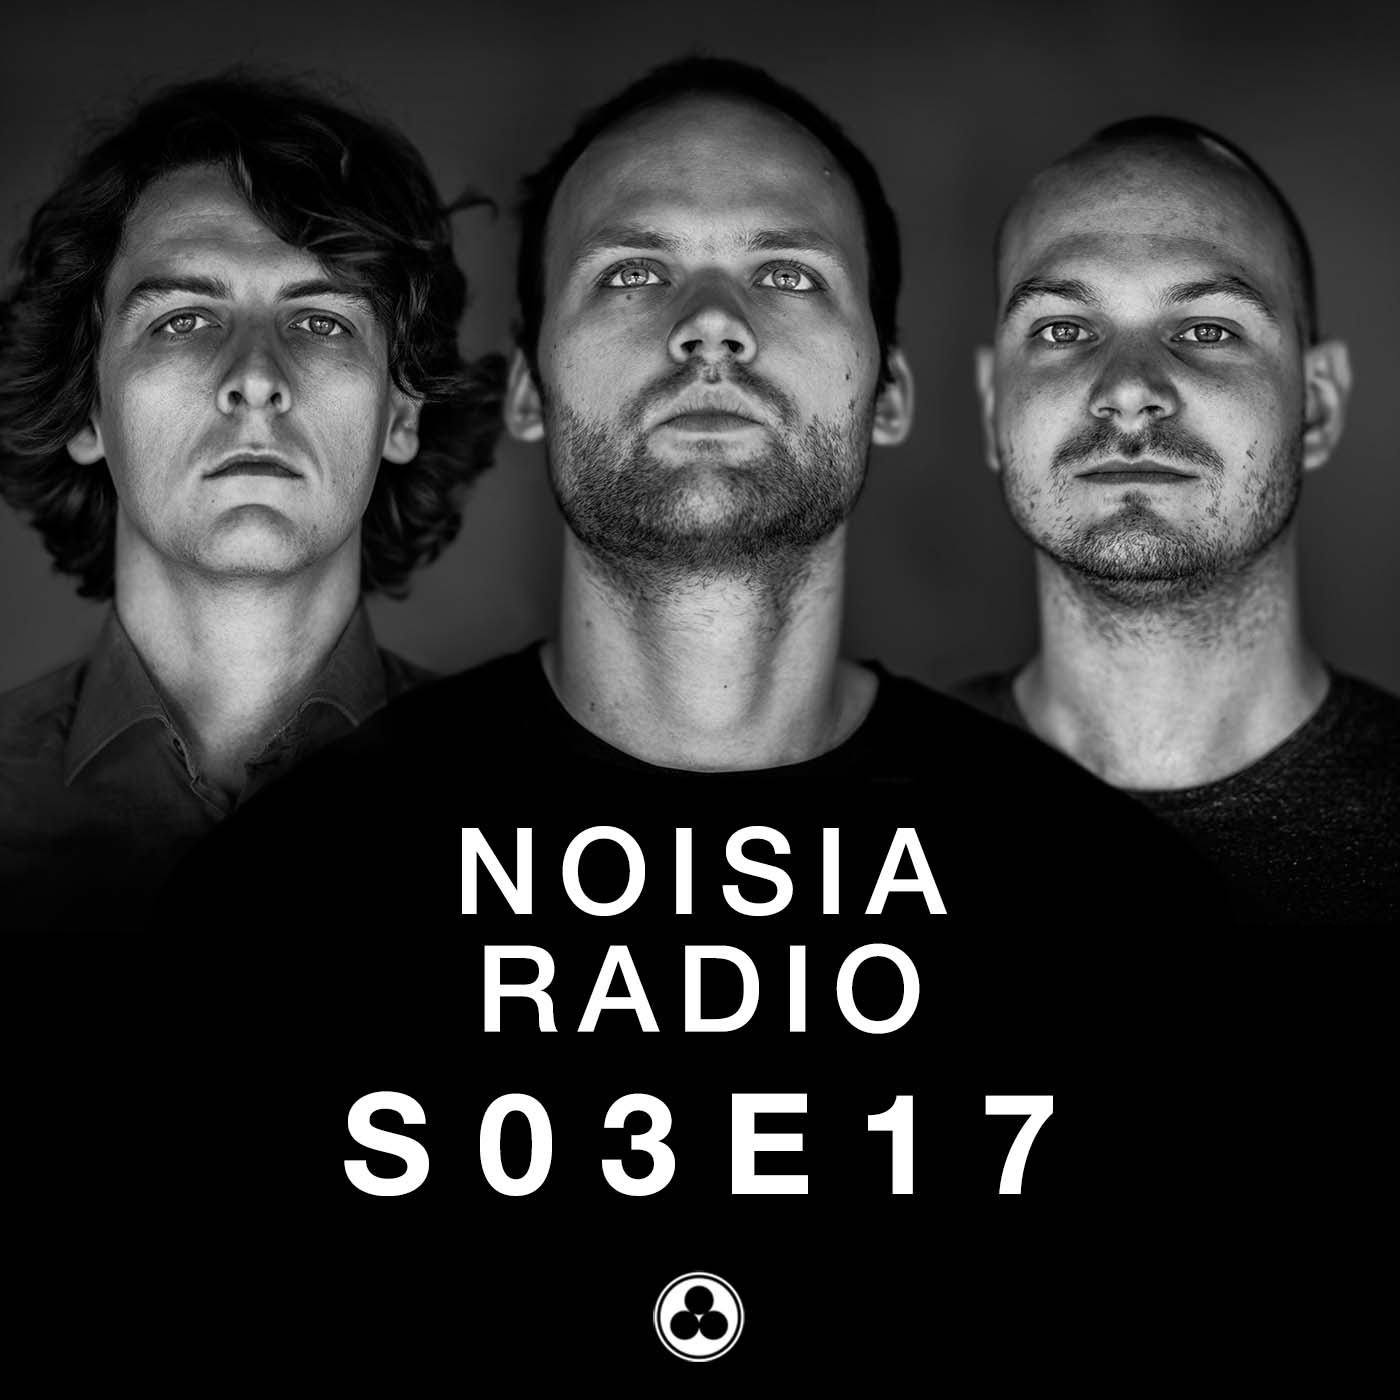 Noisia Radio S03E17 (Ivy Lab Co-Host)